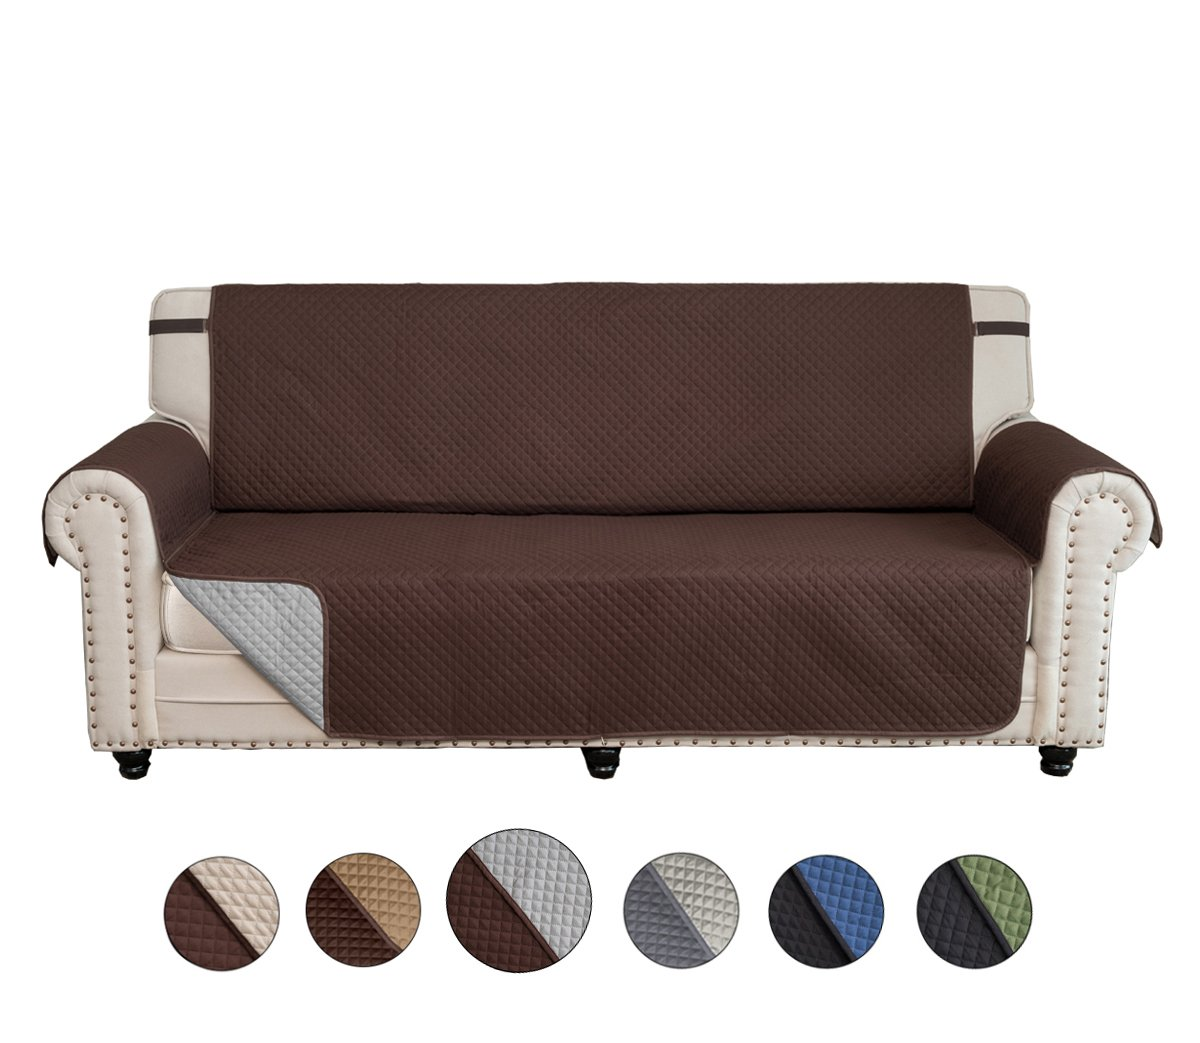 CALA Sofa Slipcovers,Covers,Reversible Couch Slipcover Furniture Protector with Elastic Straps,Covers Perfect for Pets and Kids,Machine Washable(Chocolate/Light Gray)